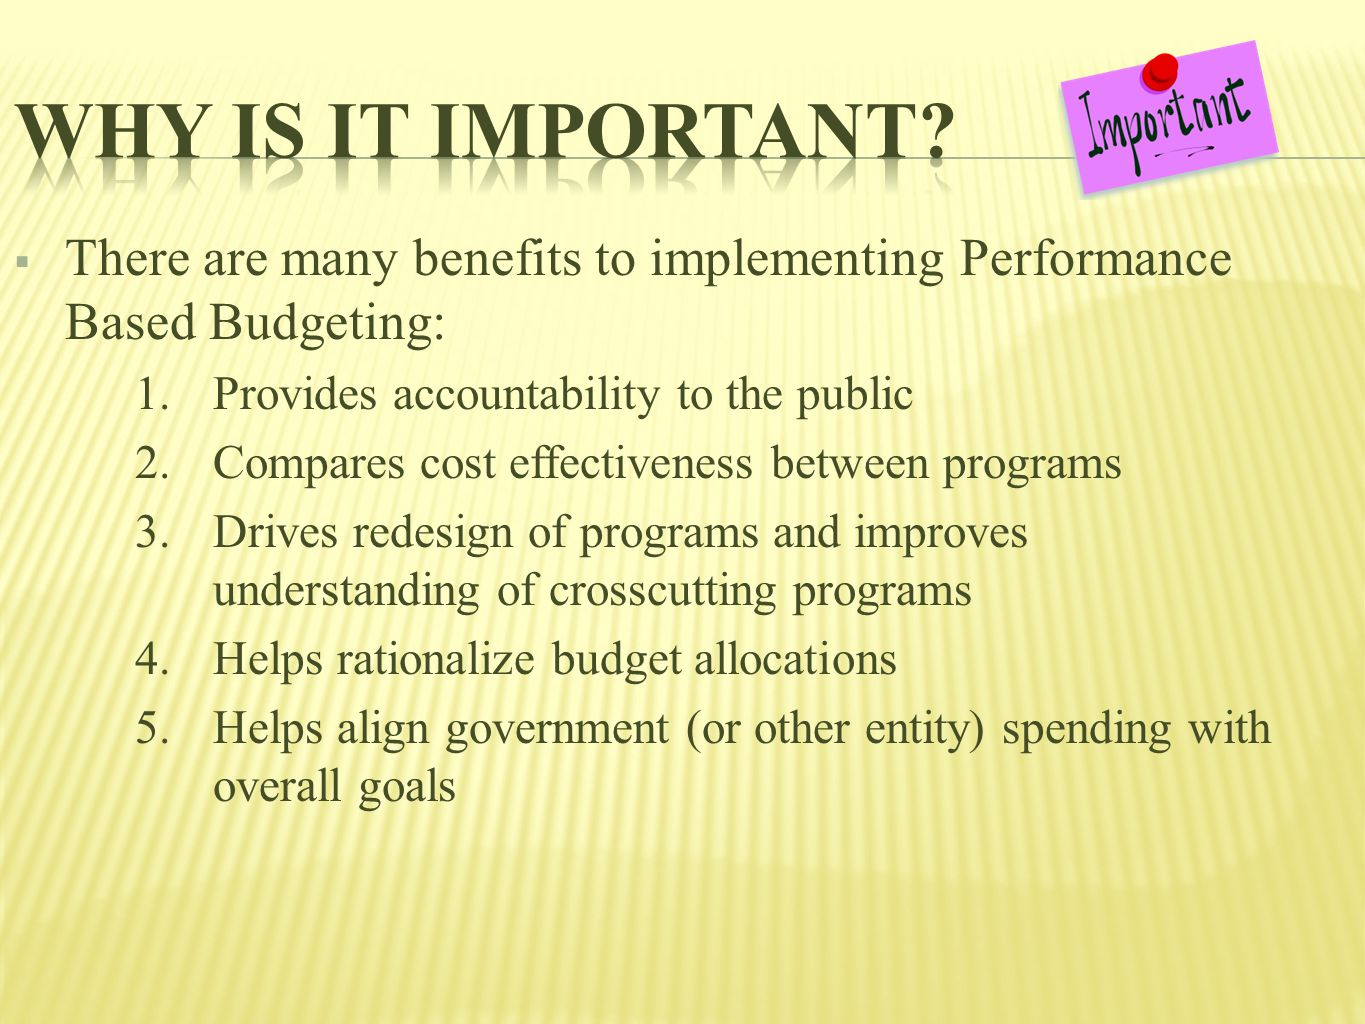  There are many benefits to implementing Performance Based Budgeting: 1.Provides accountability to the public 2.Compares cost effectiveness between programs 3.Drives redesign of programs and improves understanding of crosscutting programs 4.Helps rationalize budget allocations 5.Helps align government (or other entity) spending with overall goals